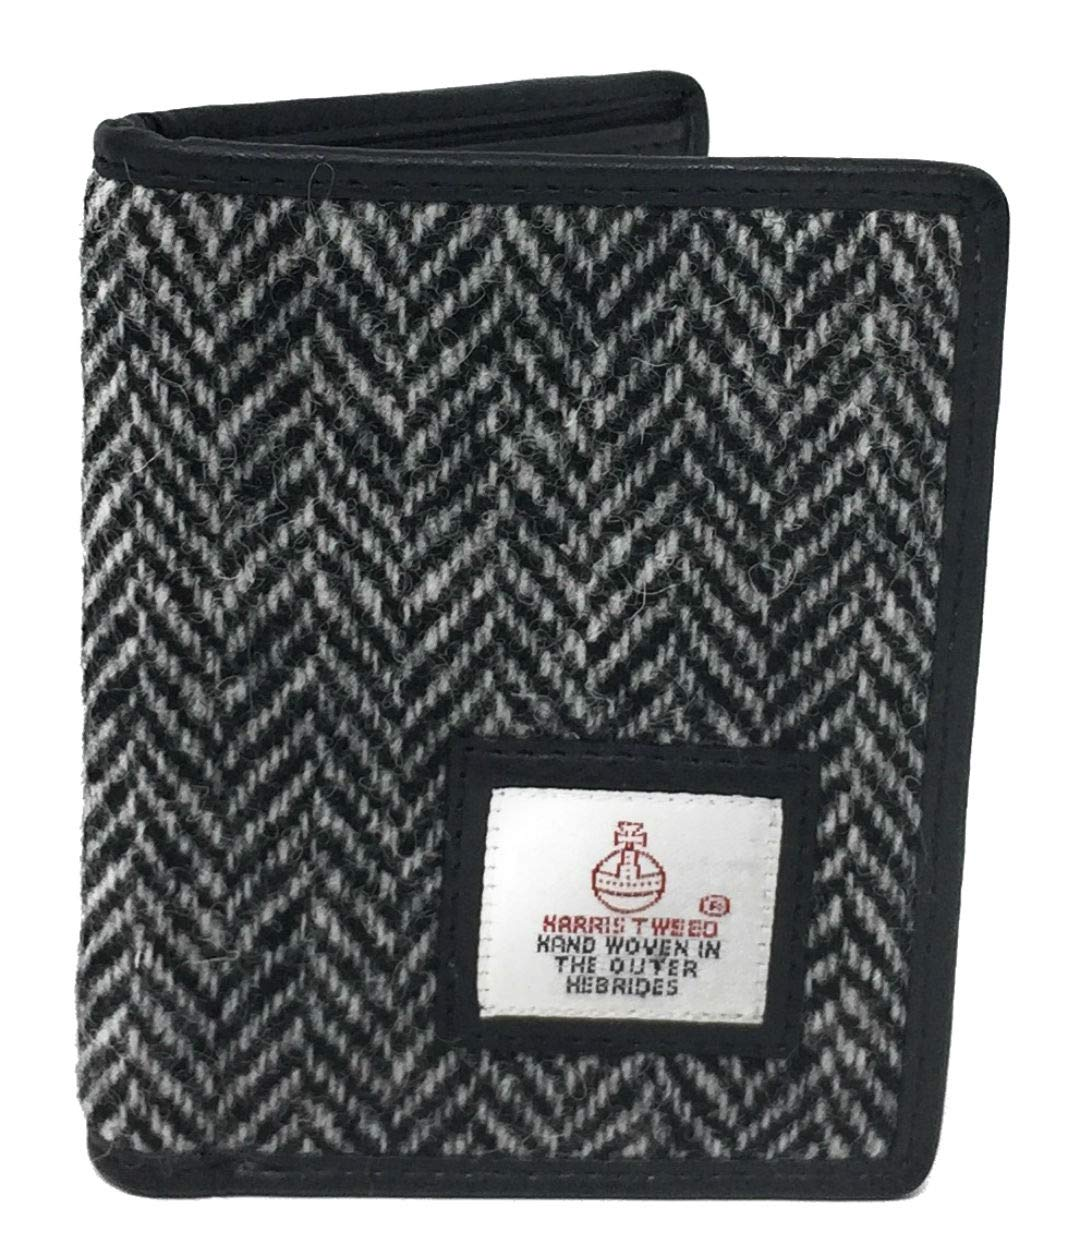 533a9db112a1 Harris Tweed Slim Bifold Card Holder Wallet Boxed (Black Herringbone)   Amazon.co.uk  Luggage